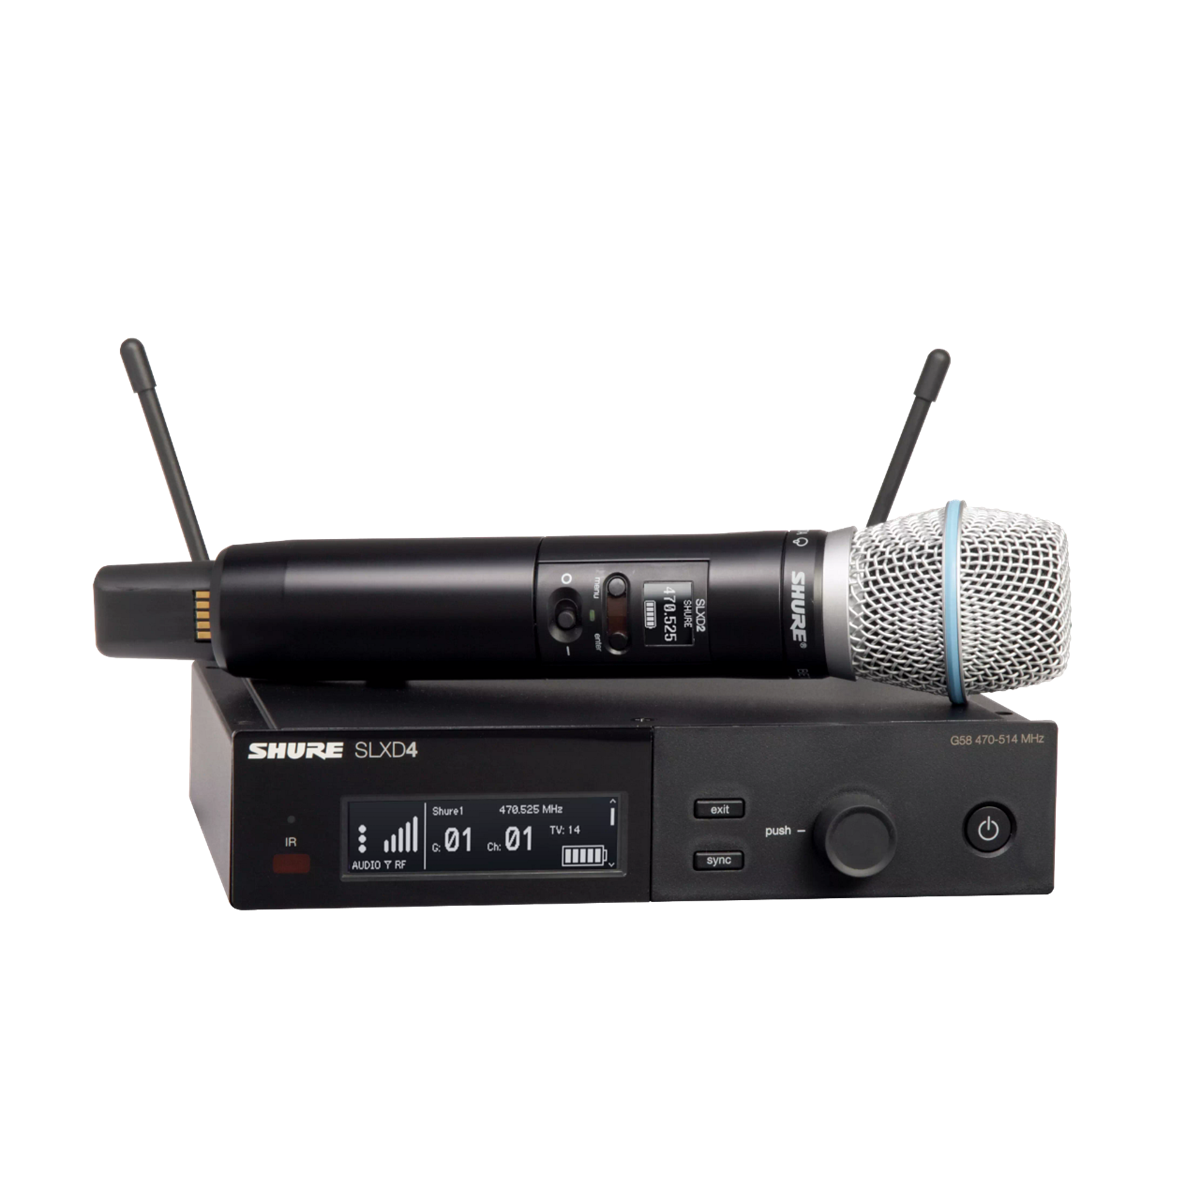 Shure SLX-D Handheld System BETA87A Microphone - 823-865MHz